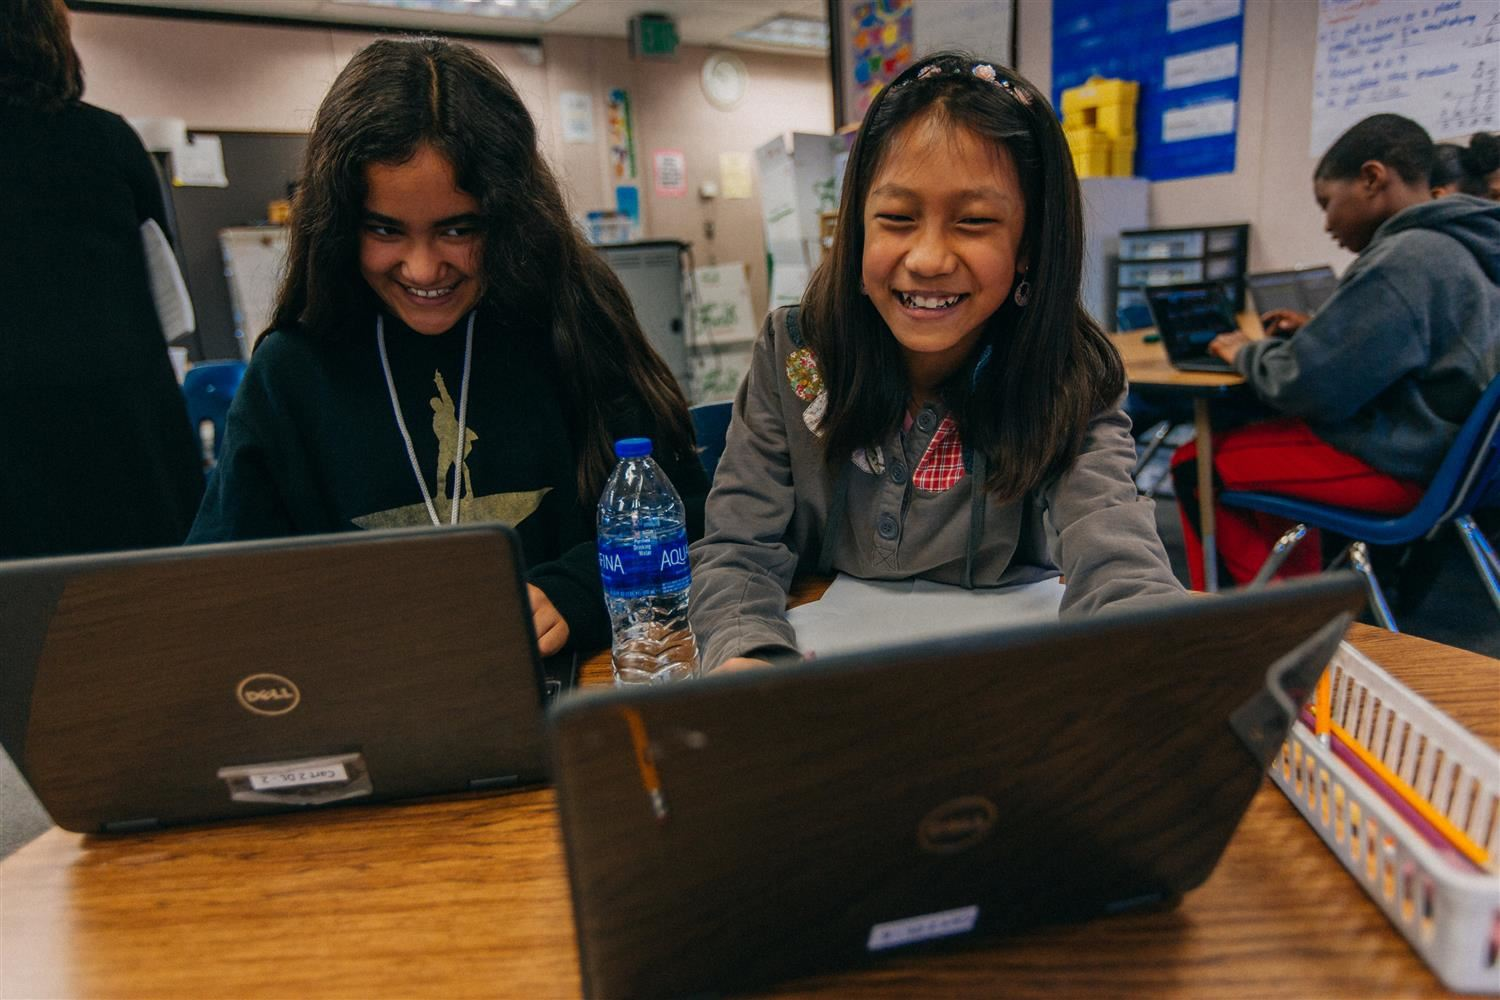 Two students laughing on computer